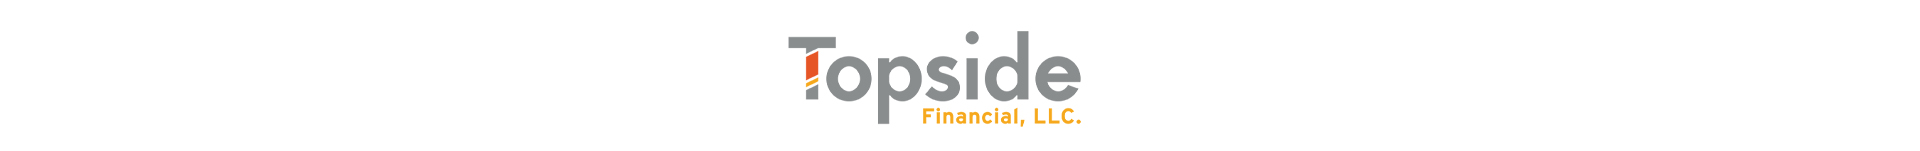 Topside Financial, LLC.